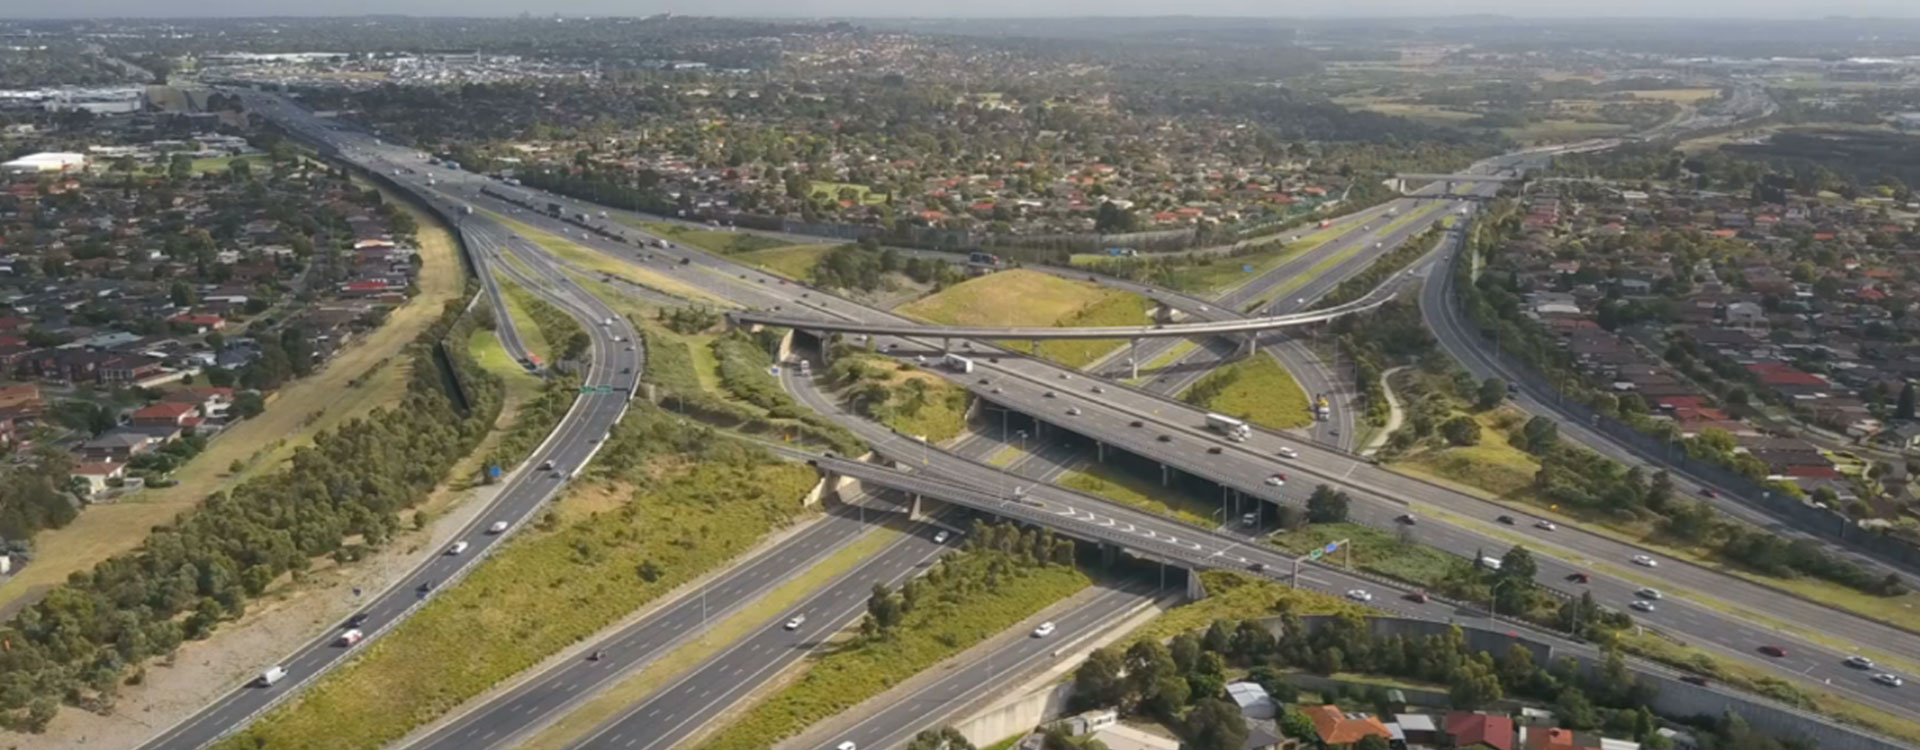 Netflow achieves financial close on $1.8b Western Roads Upgrade